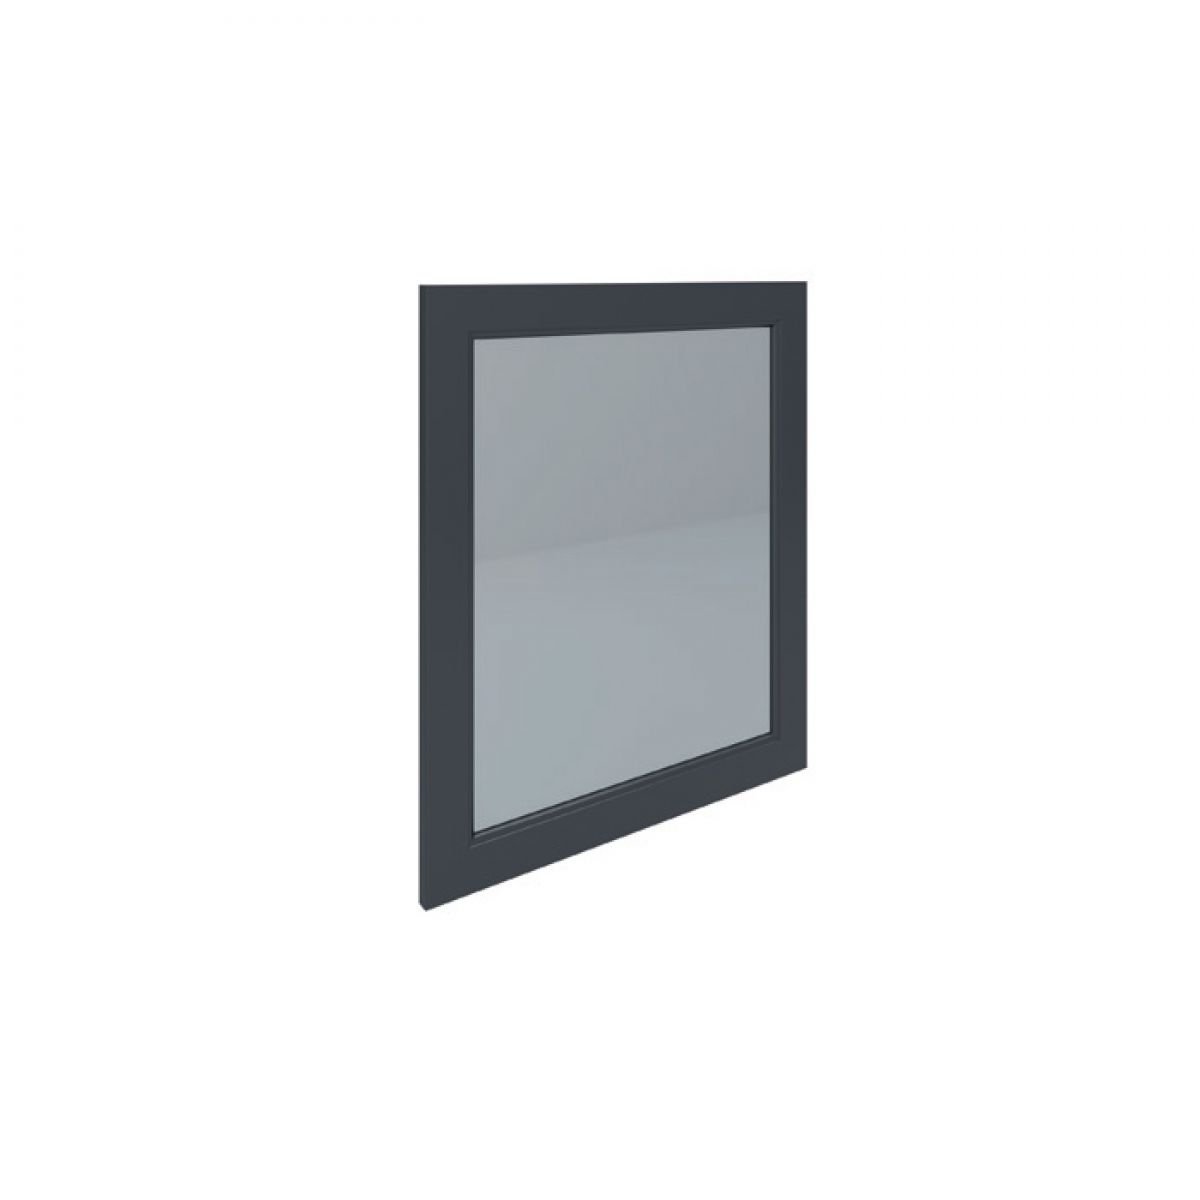 RAK Washington Black Bathroom Mirror 650mm